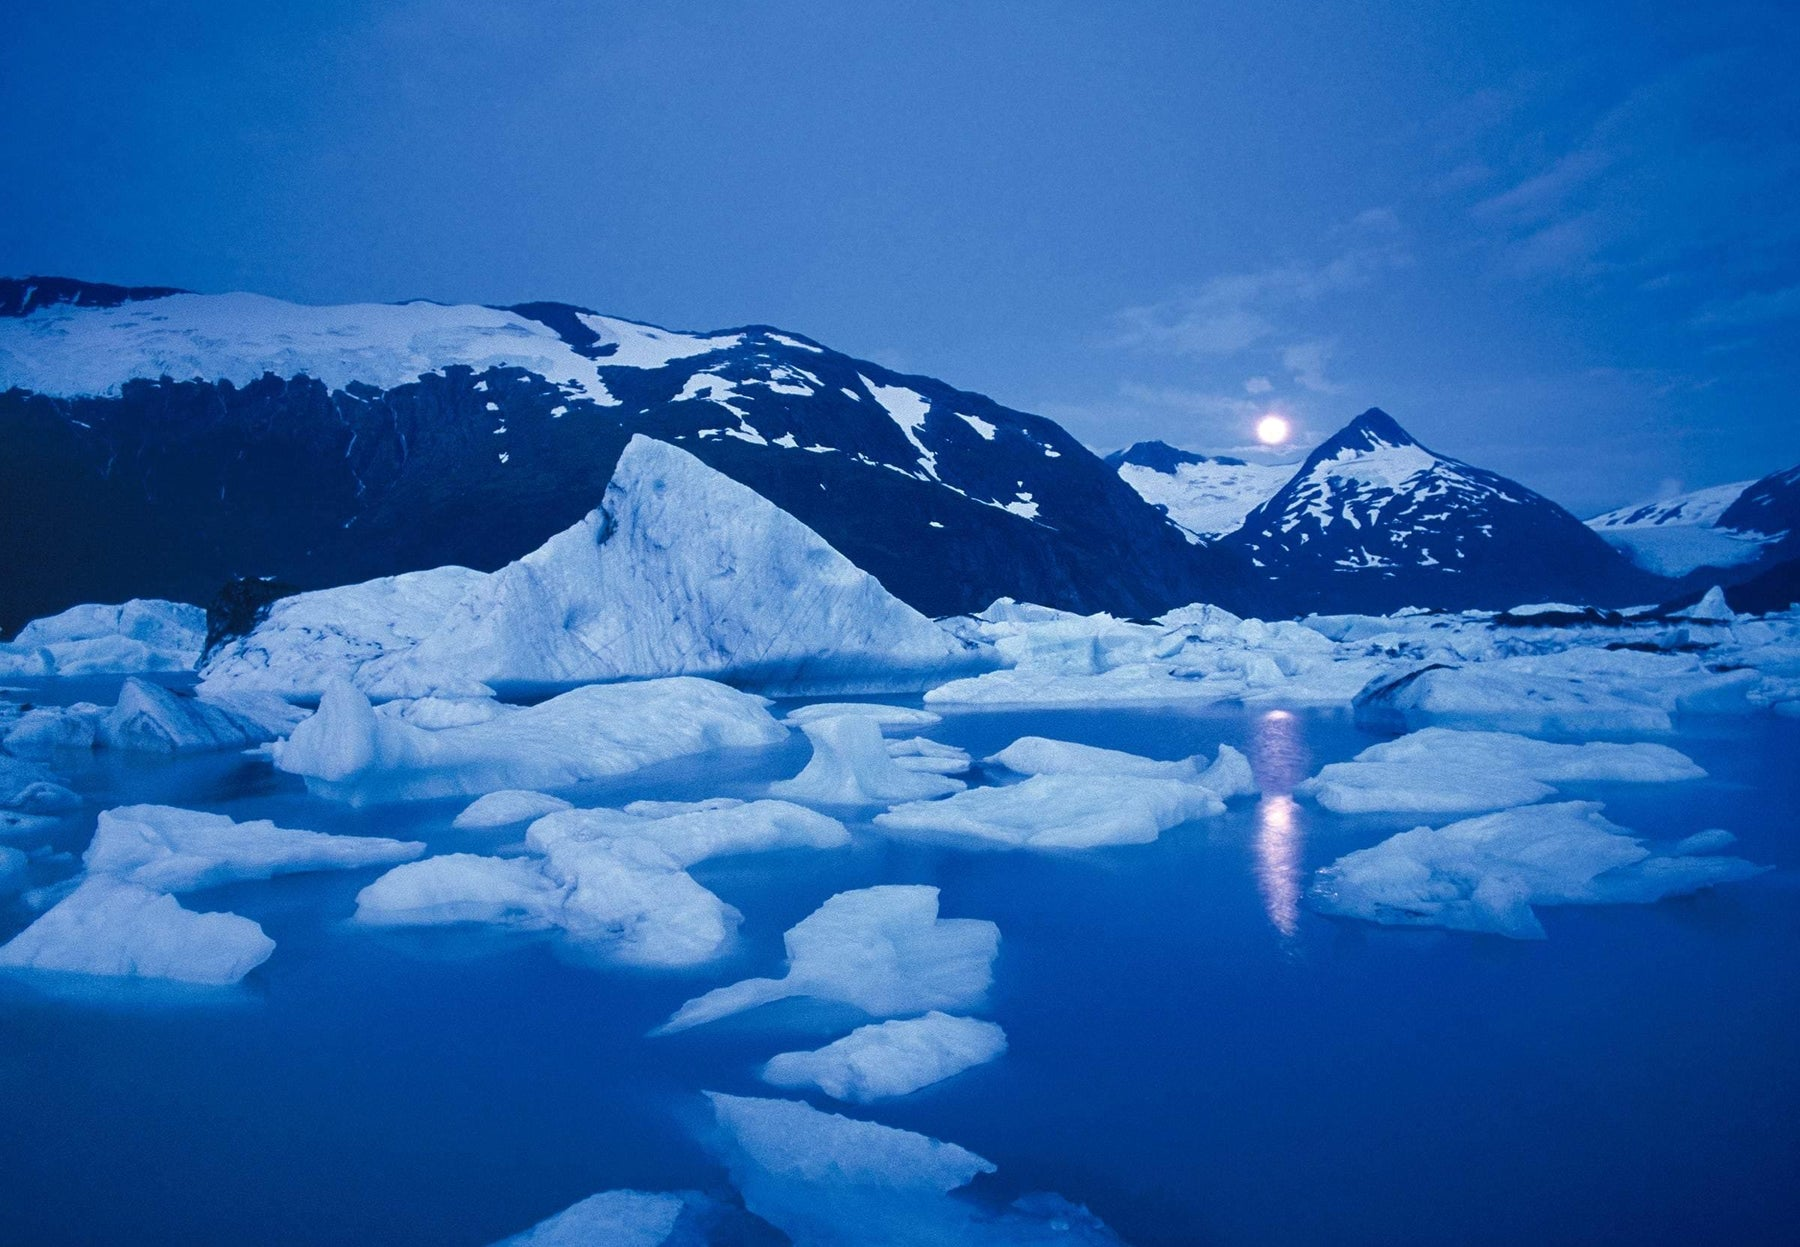 Moon in the sky over the mountains shining onto Portage Glacier and the ice chunks floating in Portage Lake Alaska